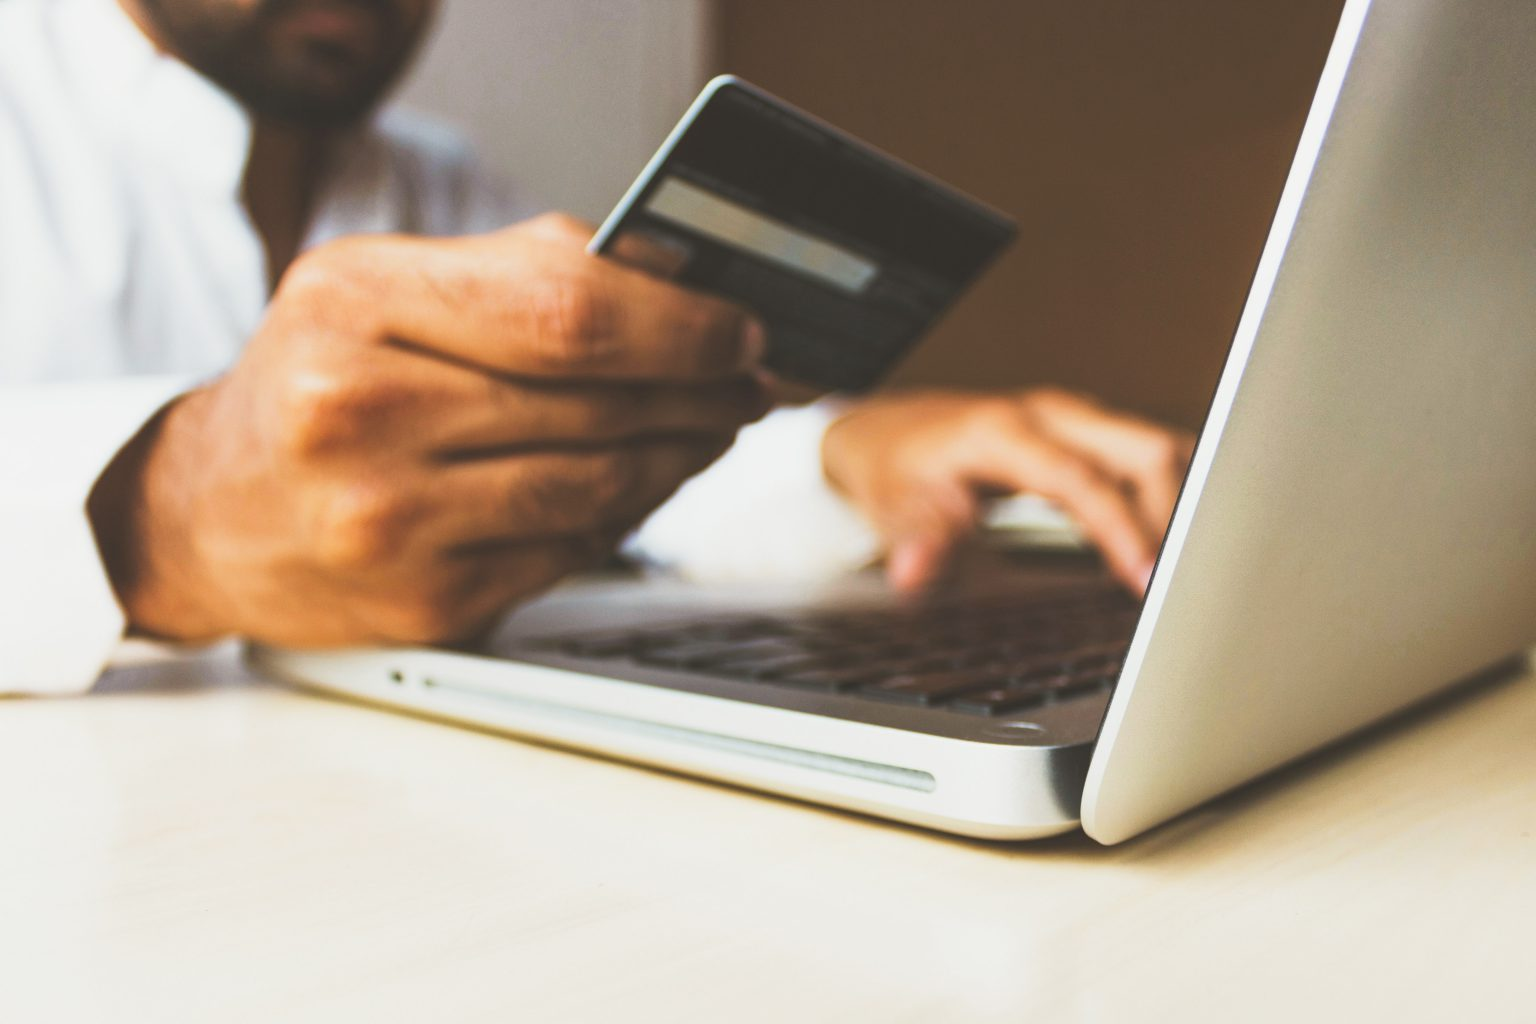 Making a card payment online.